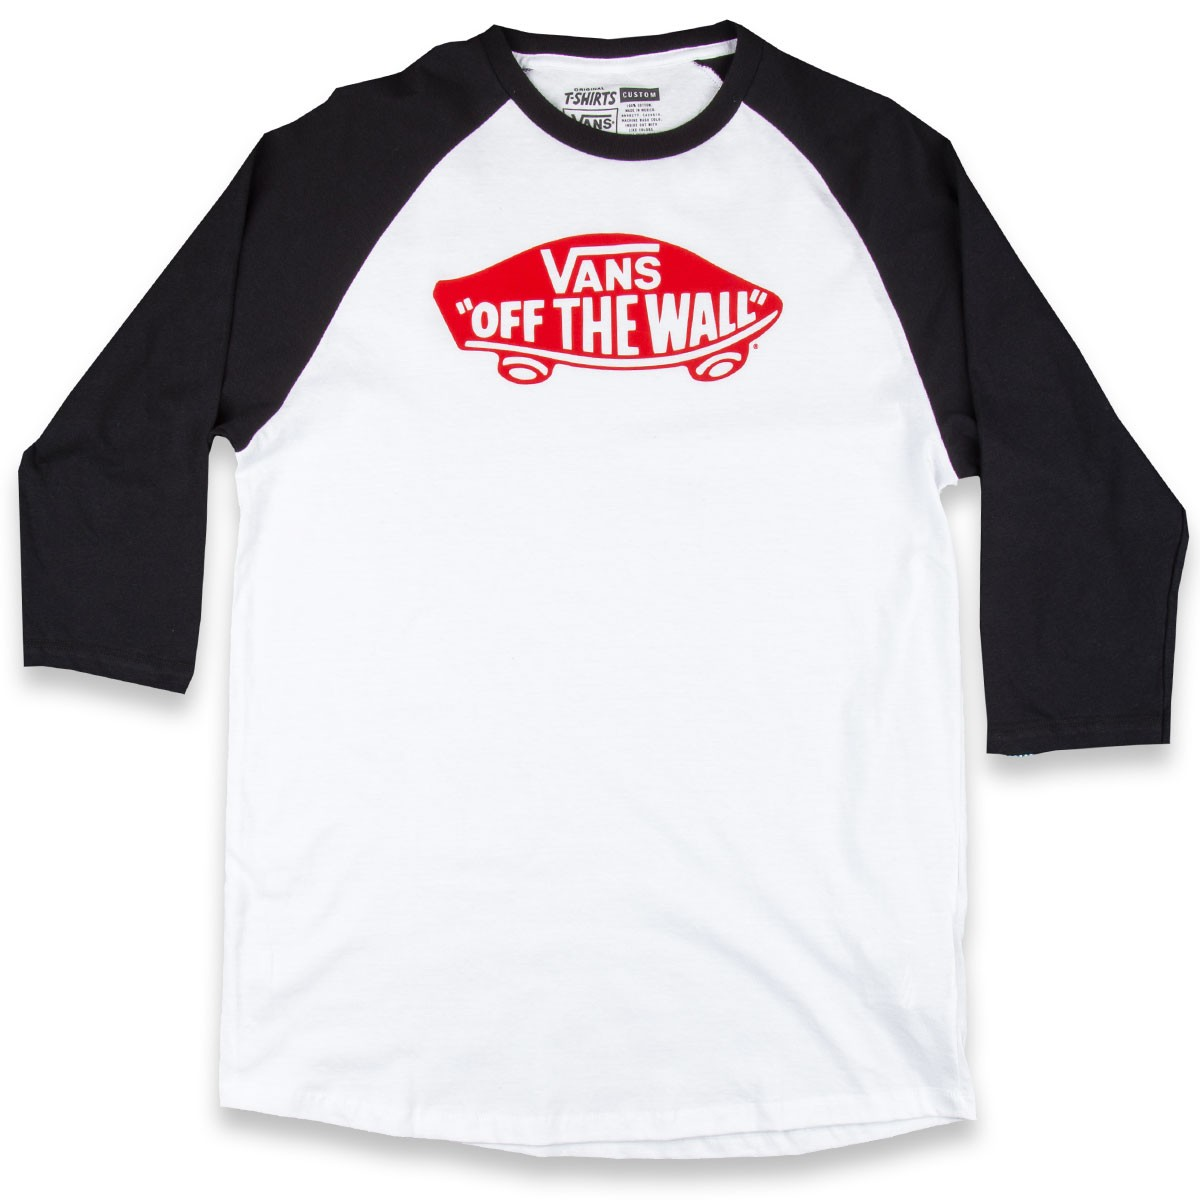 748c79c6cda Vans Otw Raglan T Shirt White Black Red